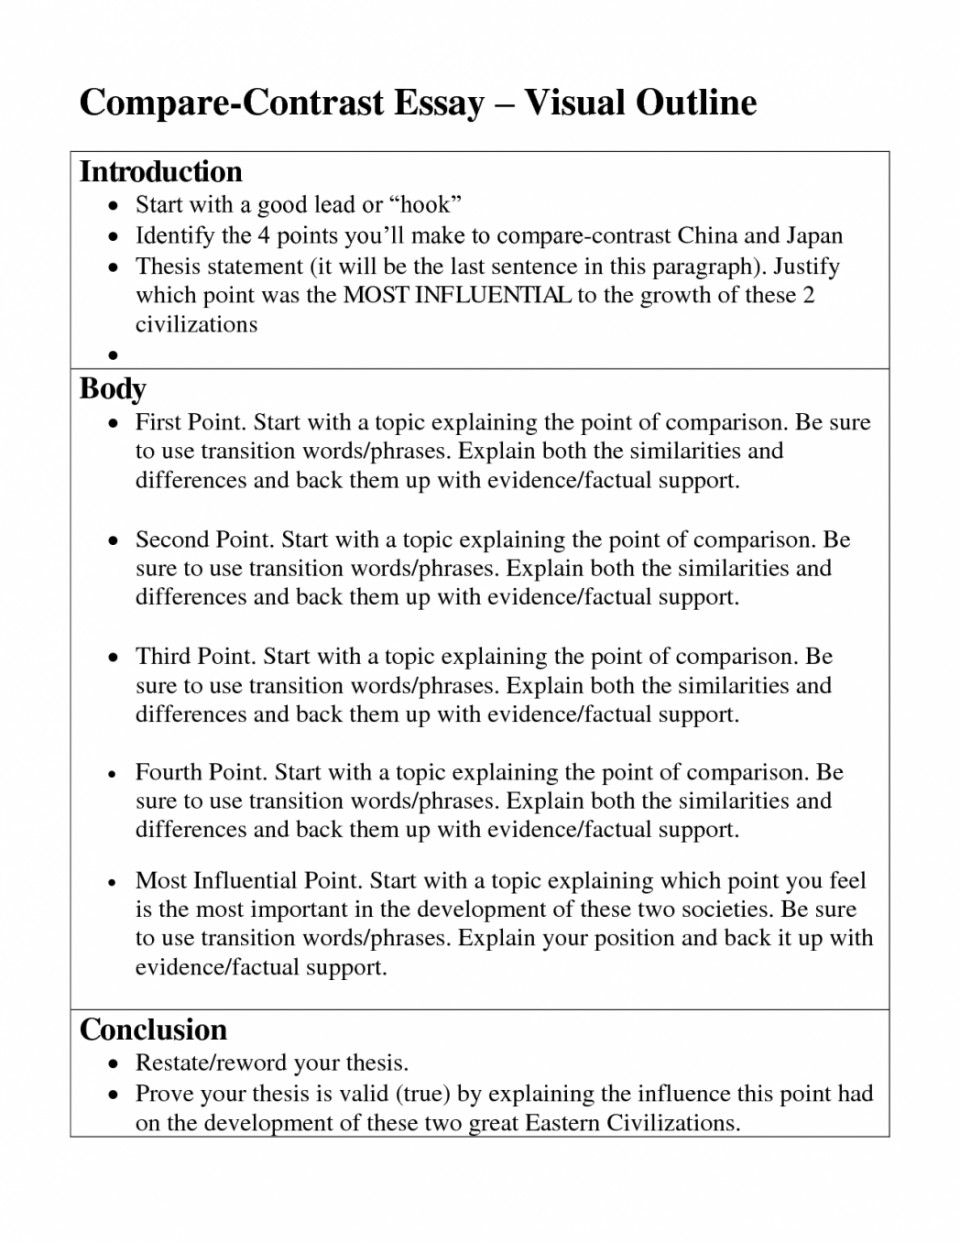 009 Compare And Contrast Essay Topics For High School Students English College Pdf Research Paper 1048x1356 Fantastic Ielts 960